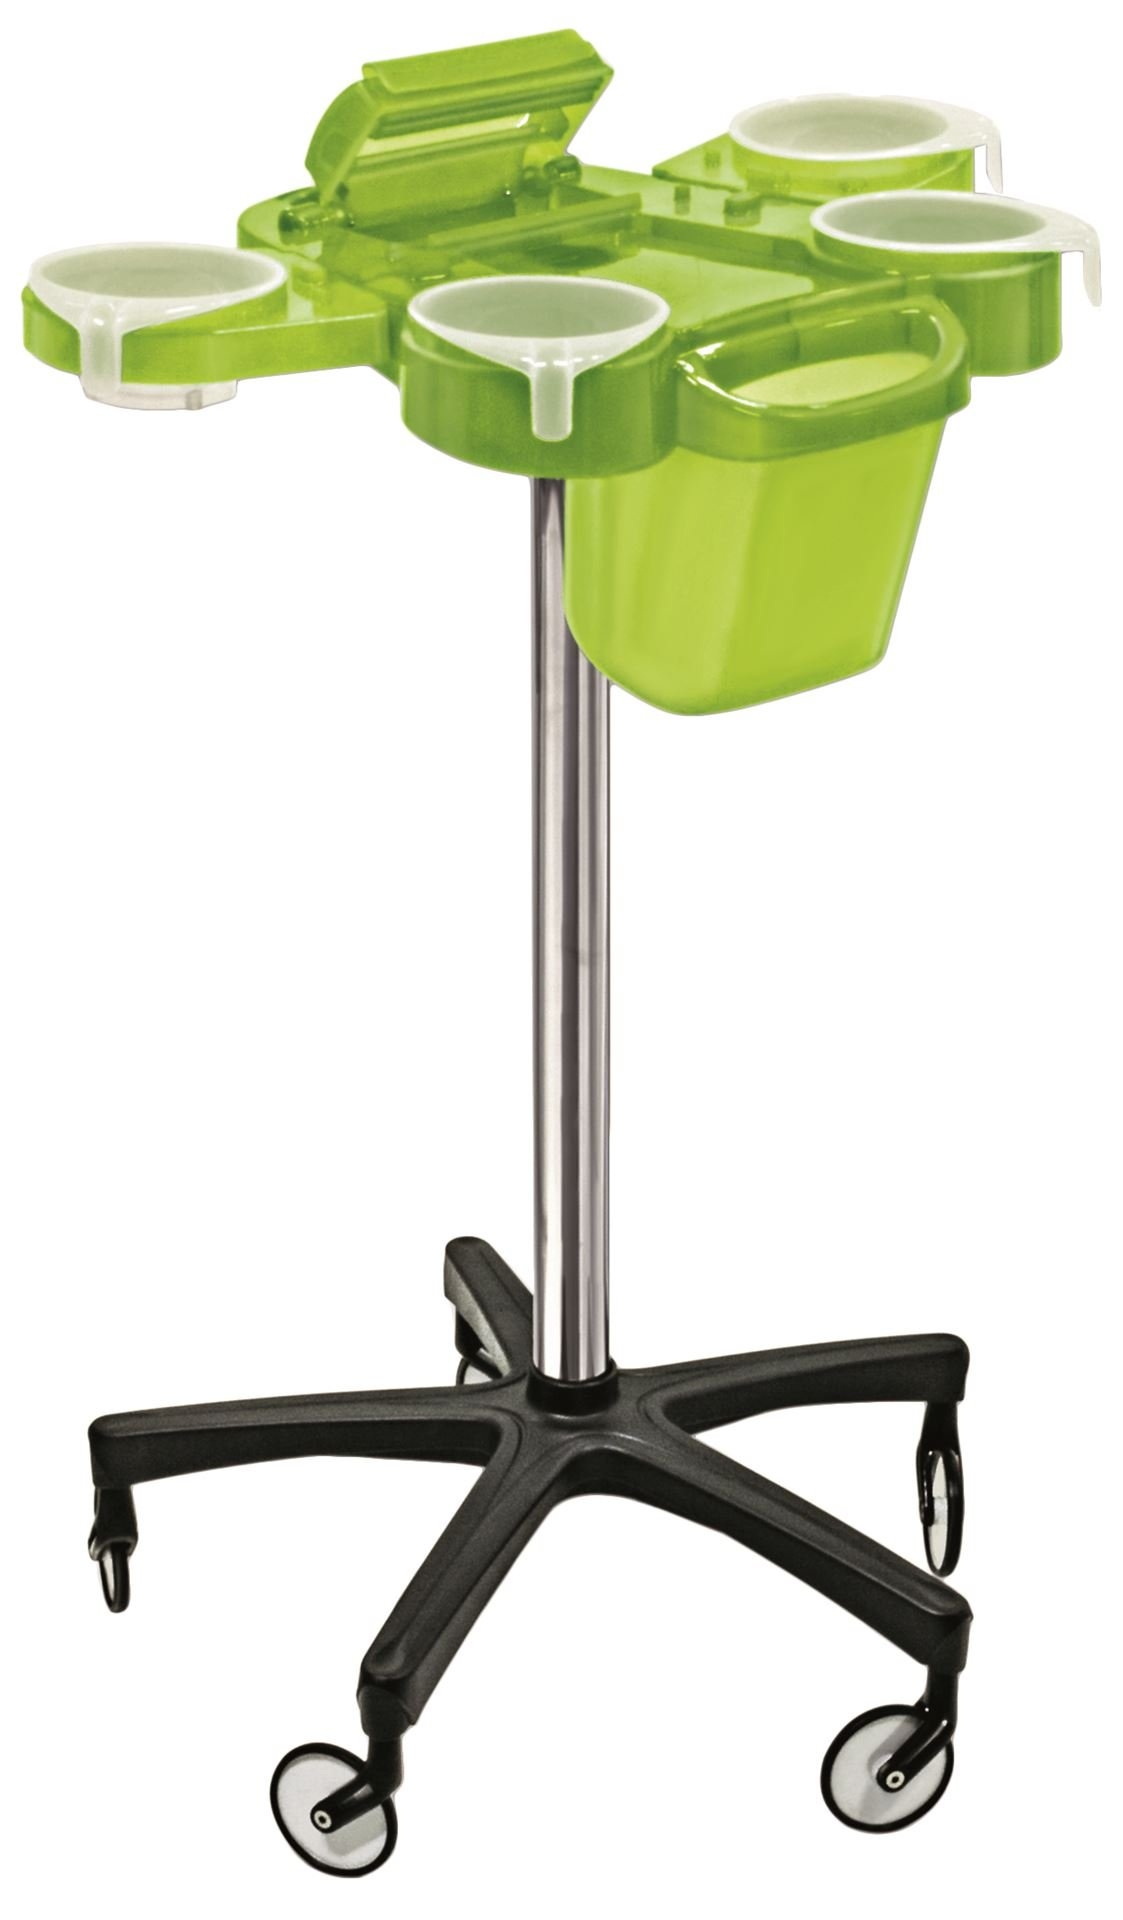 Ceriotti Italian Green Service Plus Hair Coloring Perm Cart With Foil Cutter, Waste Can and Oversized Italian Wheels Made In Italy